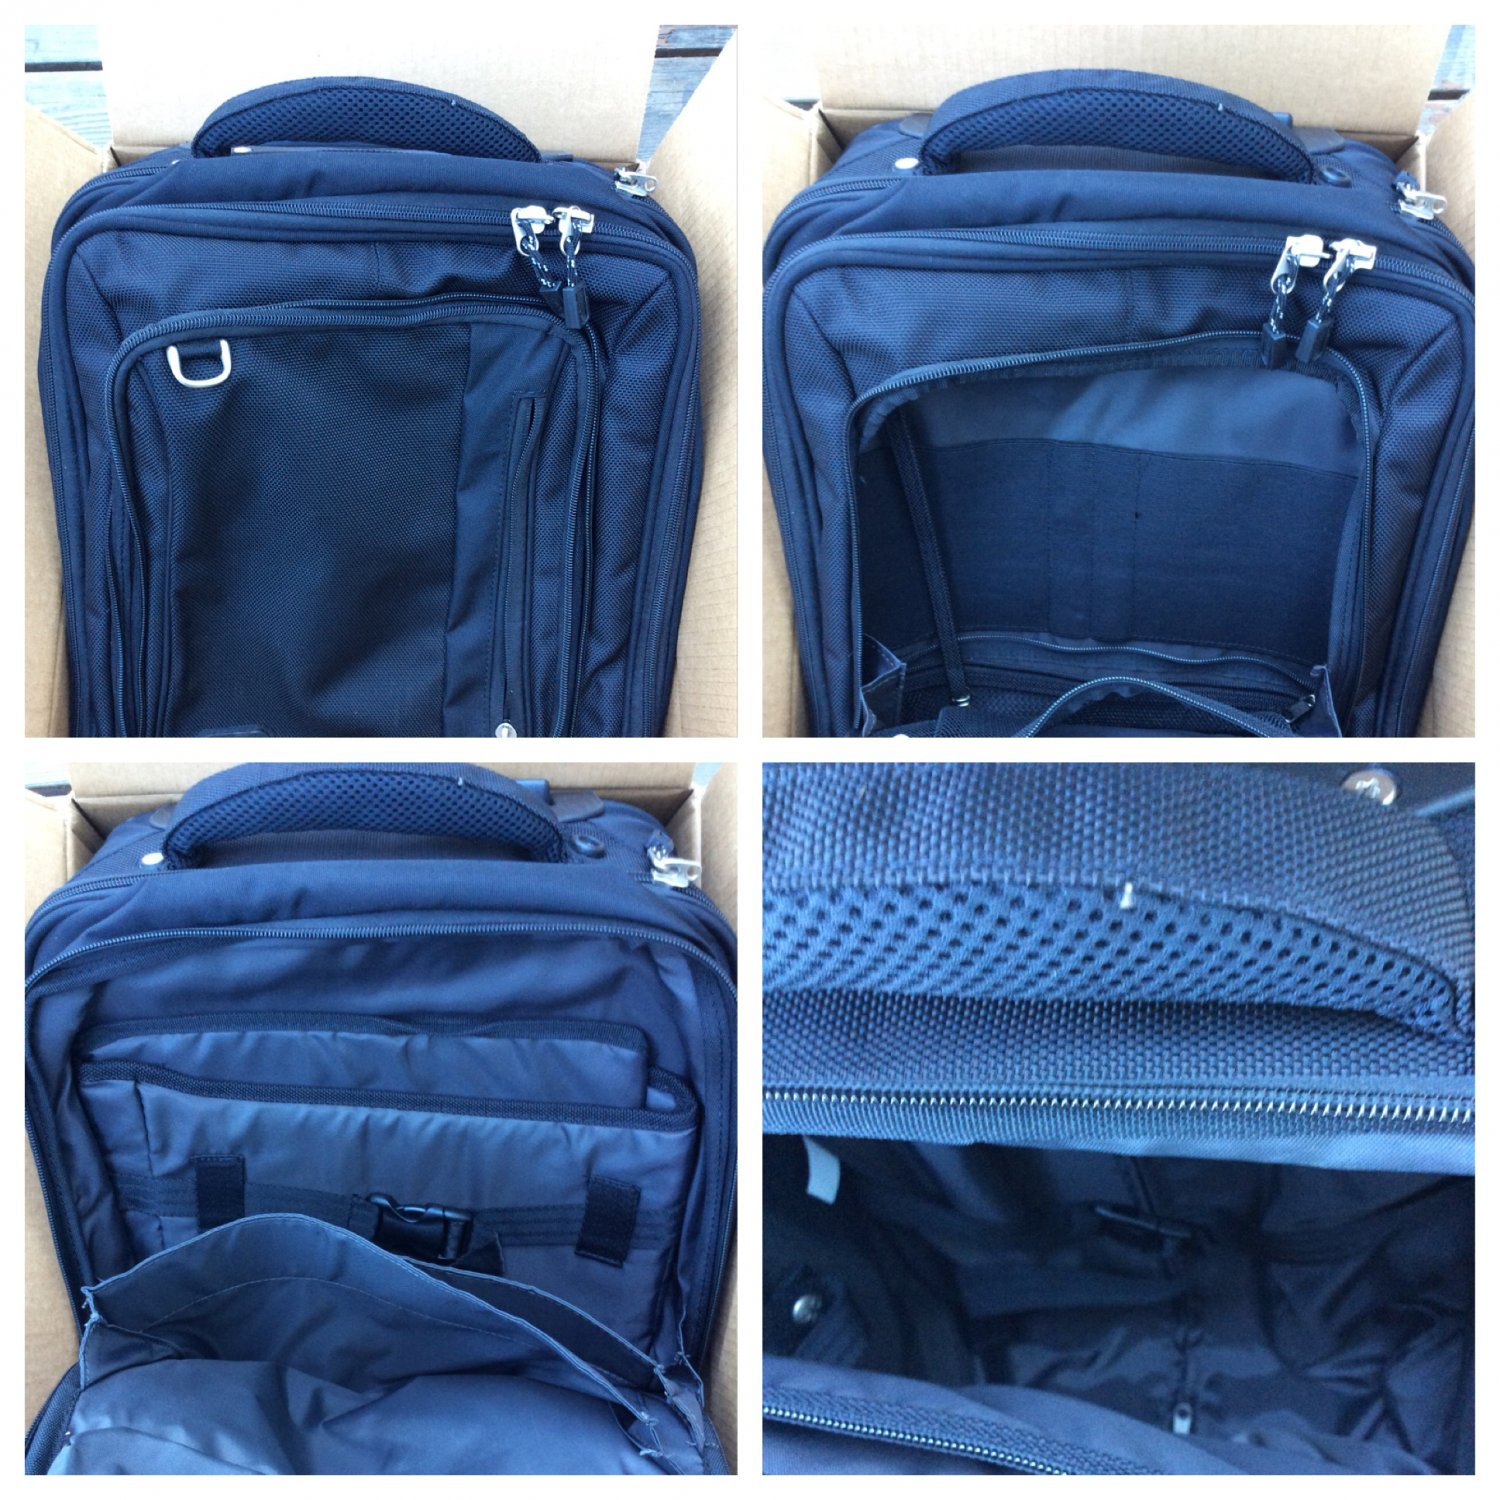 eBags Perspective Mobile Office rolling tech case Black carry-on underseater retired